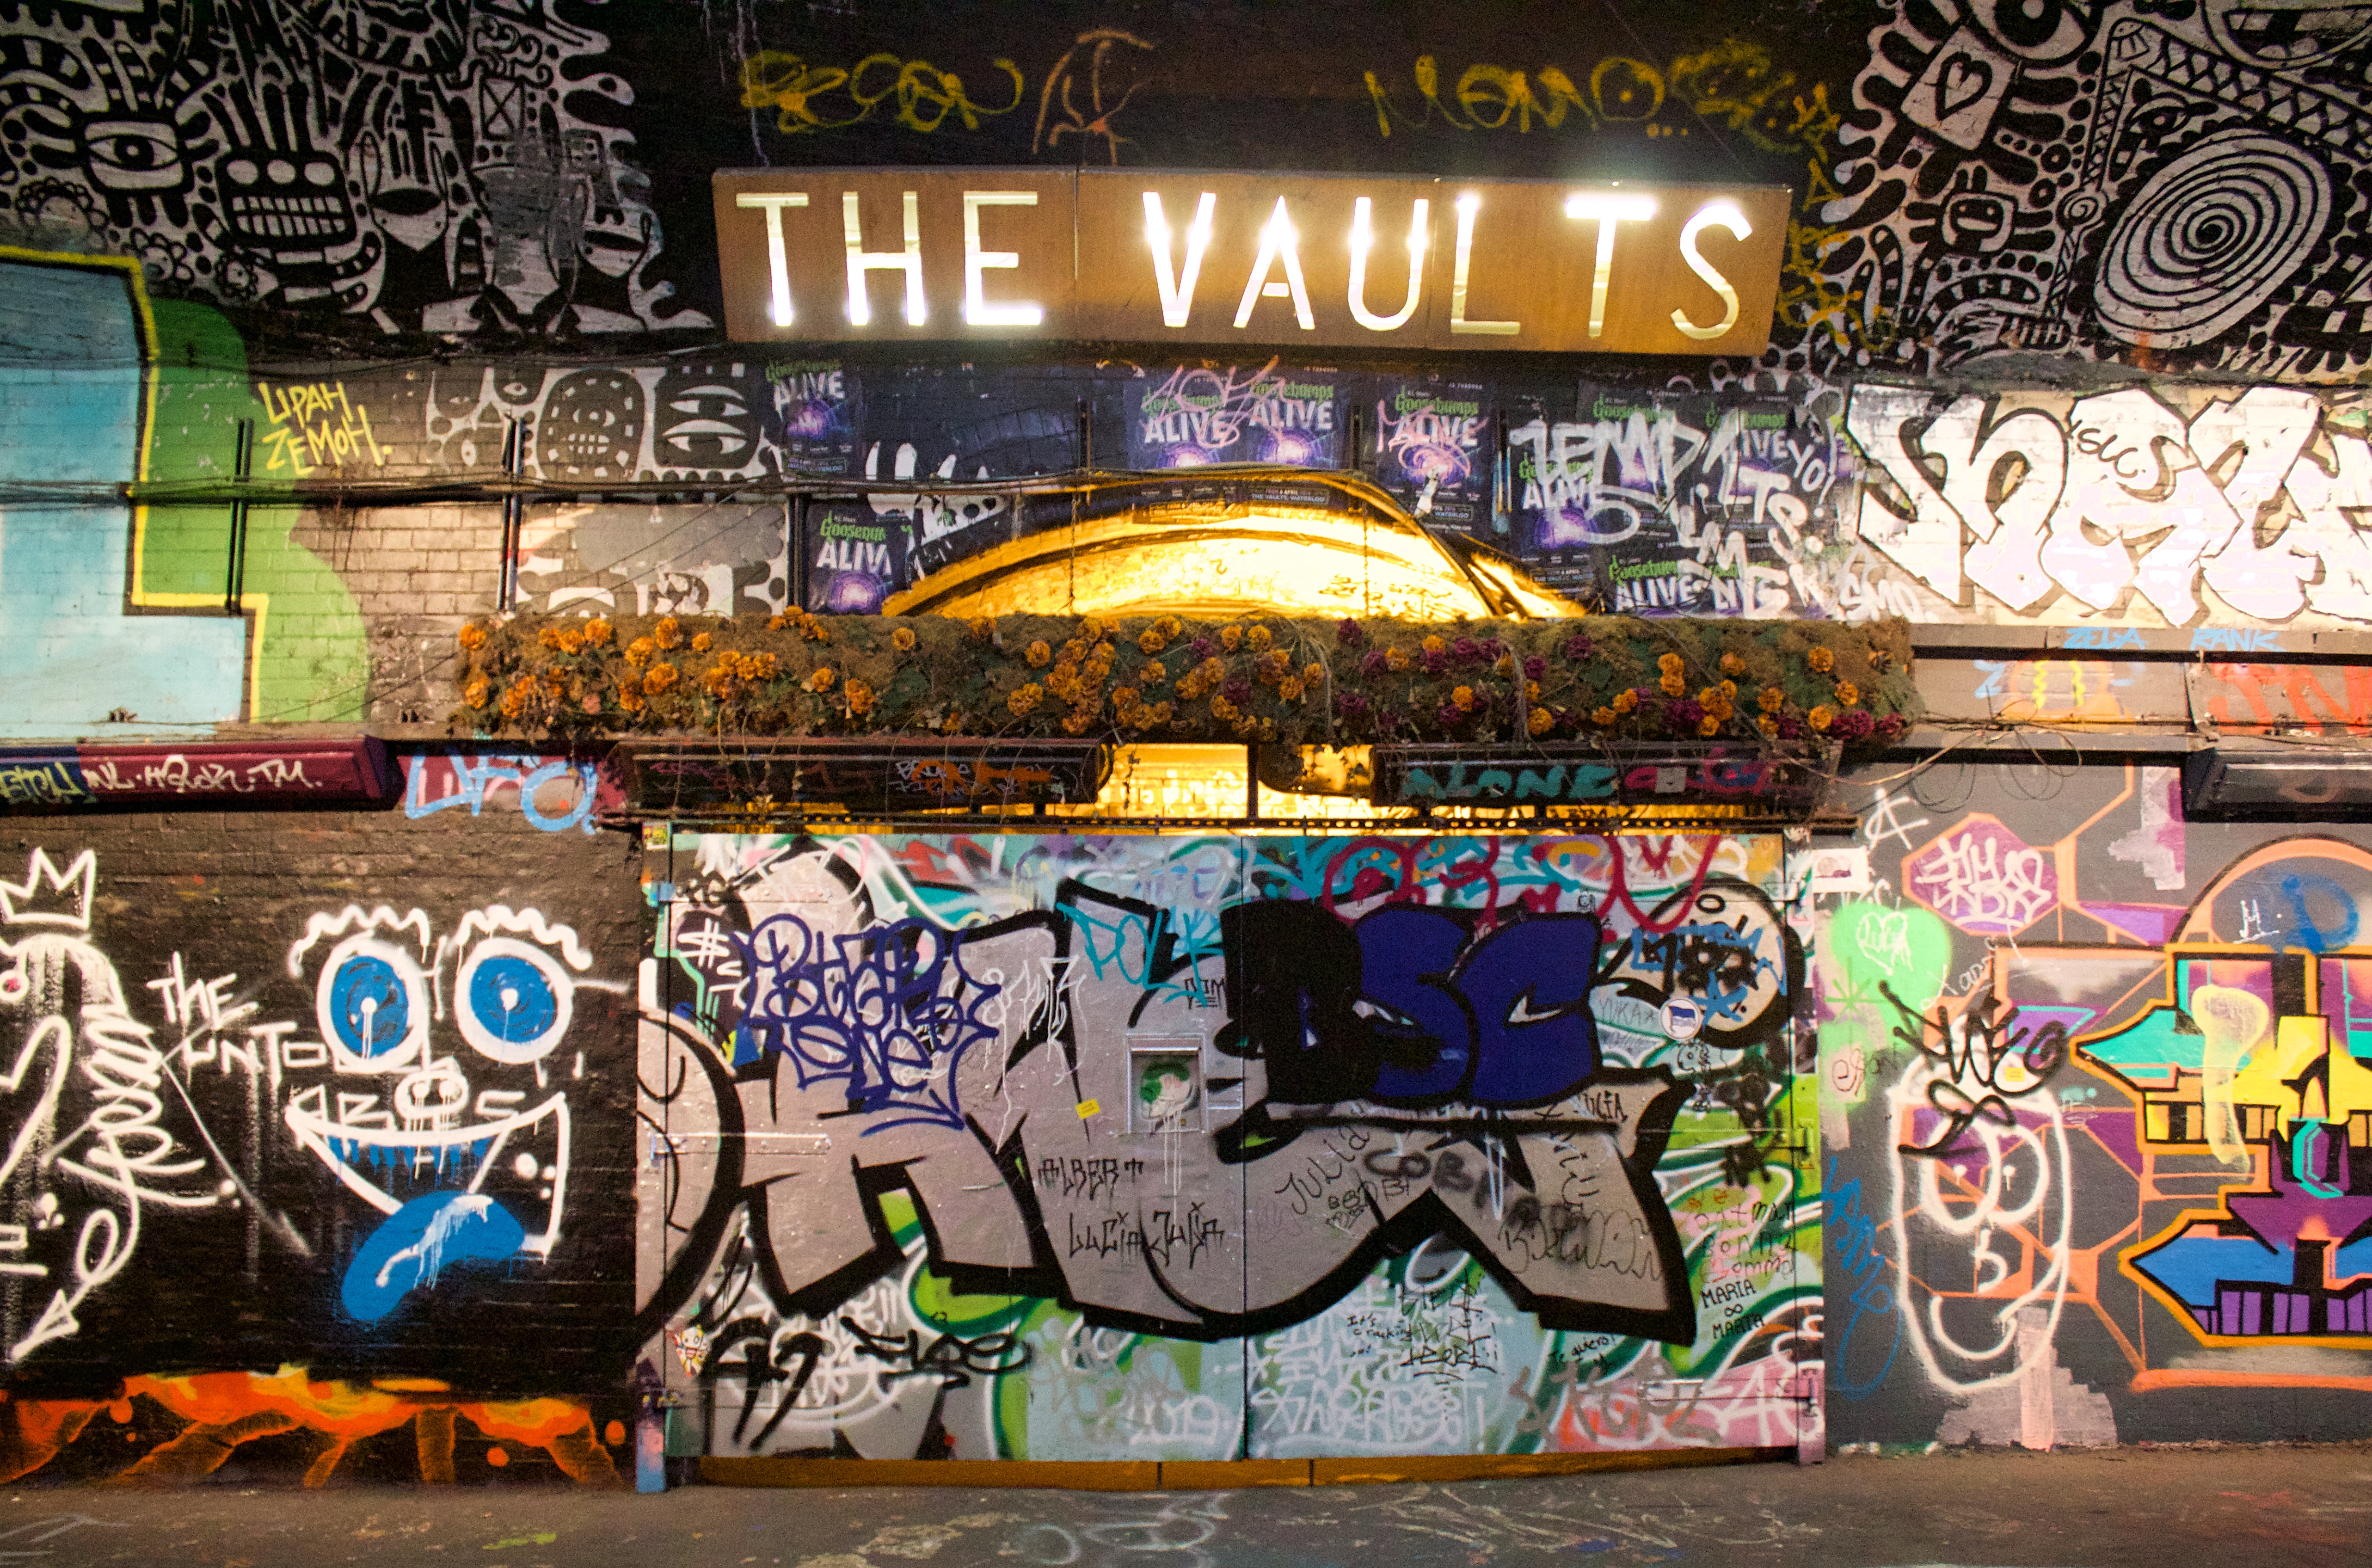 The Vaults art and theatre space, Leake Street Waterloo